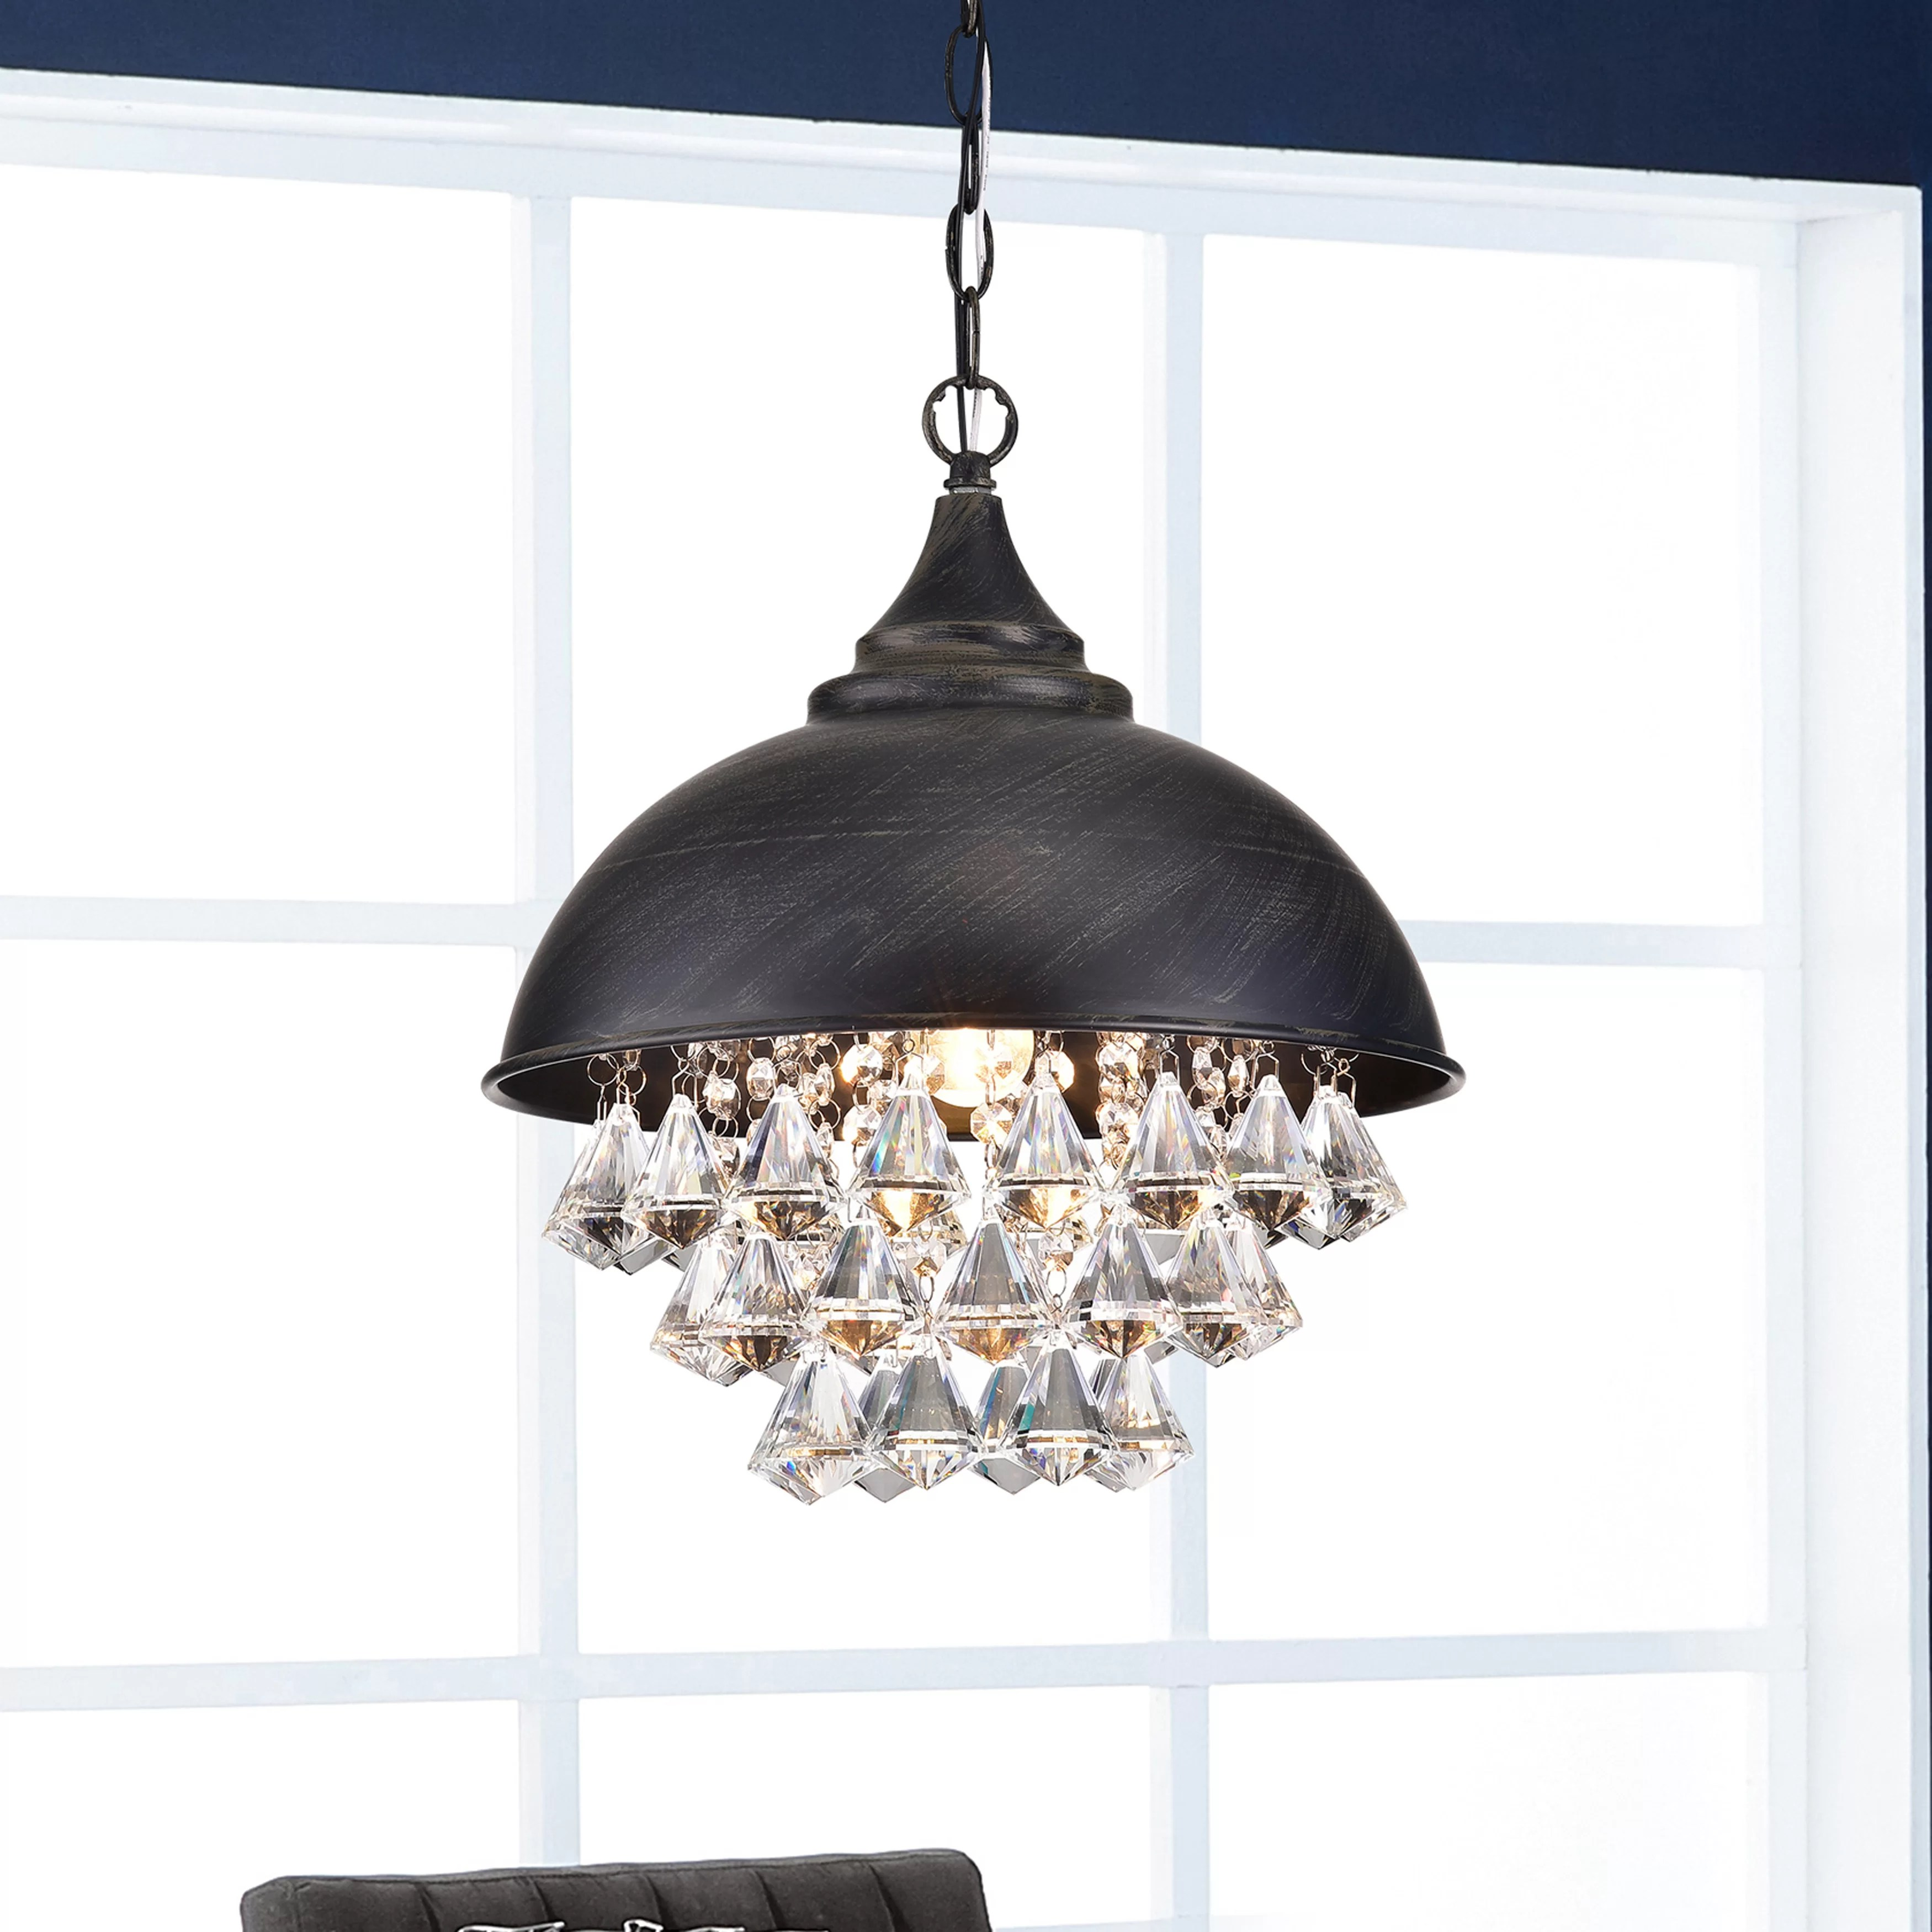 Glass Chandeliers Free Shipping Over 35 Wayfair